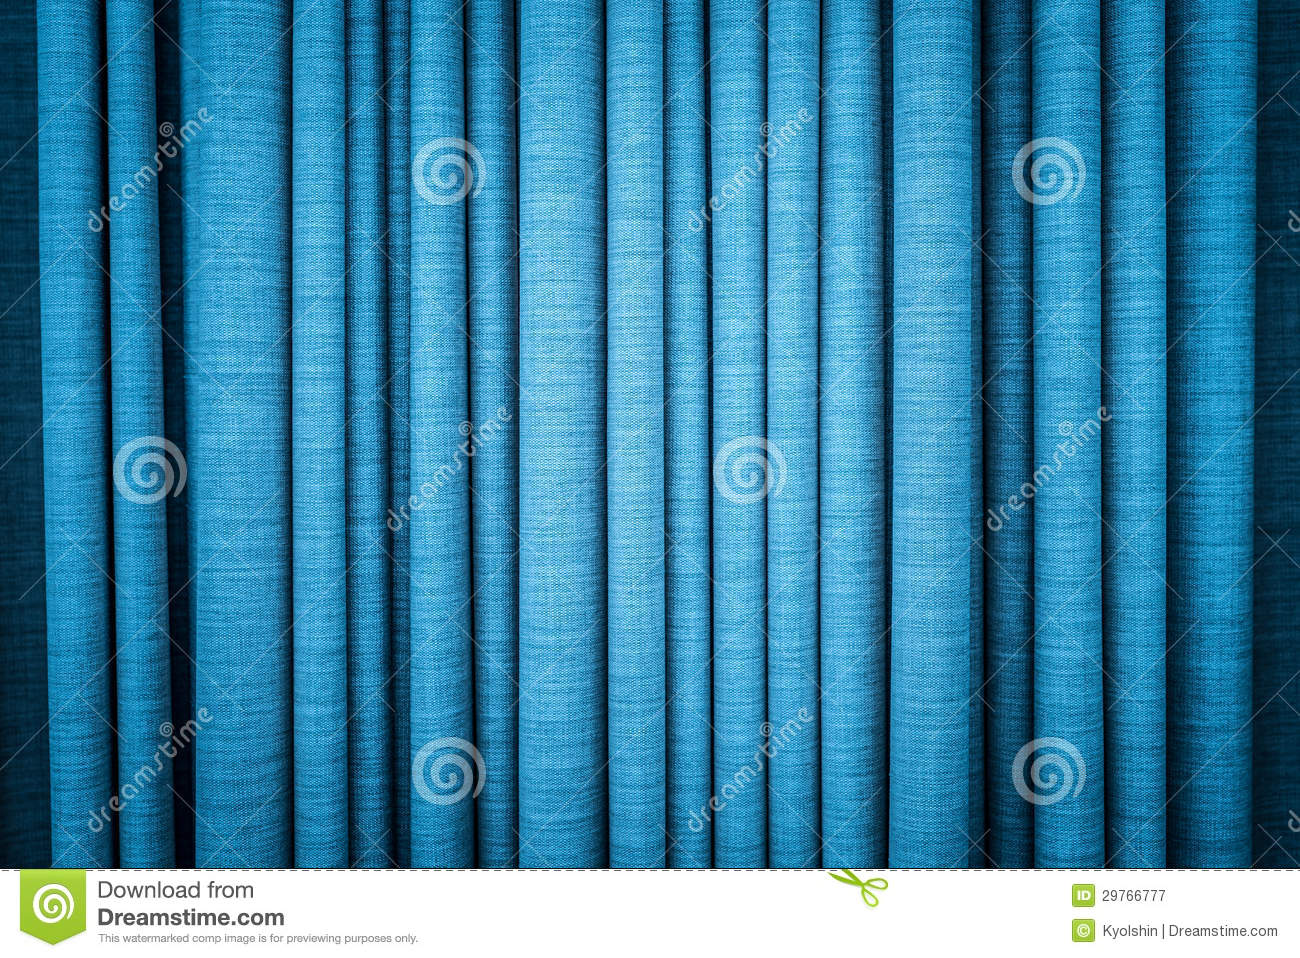 30   Amazing Blue Curtain Fabric for Curtains Texture Blue  45hul